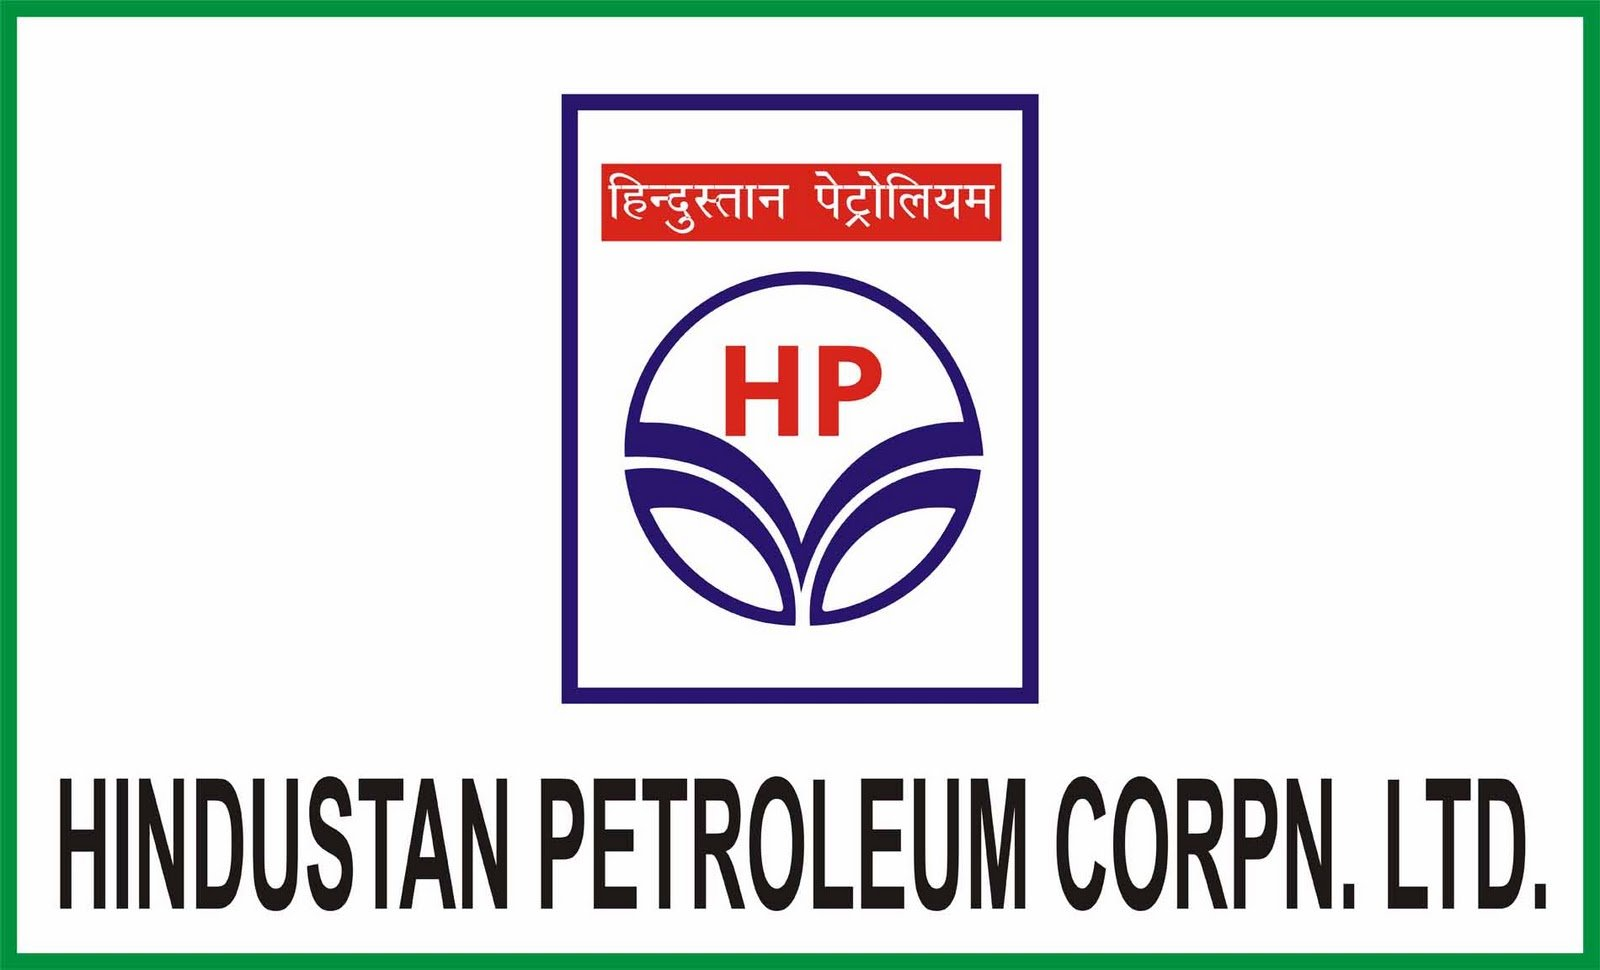 CASE No. 223 of 2018 – Case of Hindustan Petroleum Corporation Limited under Section 86 (1) (f) of the Electricity Act, 2003 Pertaining To Adjudication of Disputes between Hindustan Petroleum Corporation Limited and Maharashtra State Electricity Distribution Company Limited